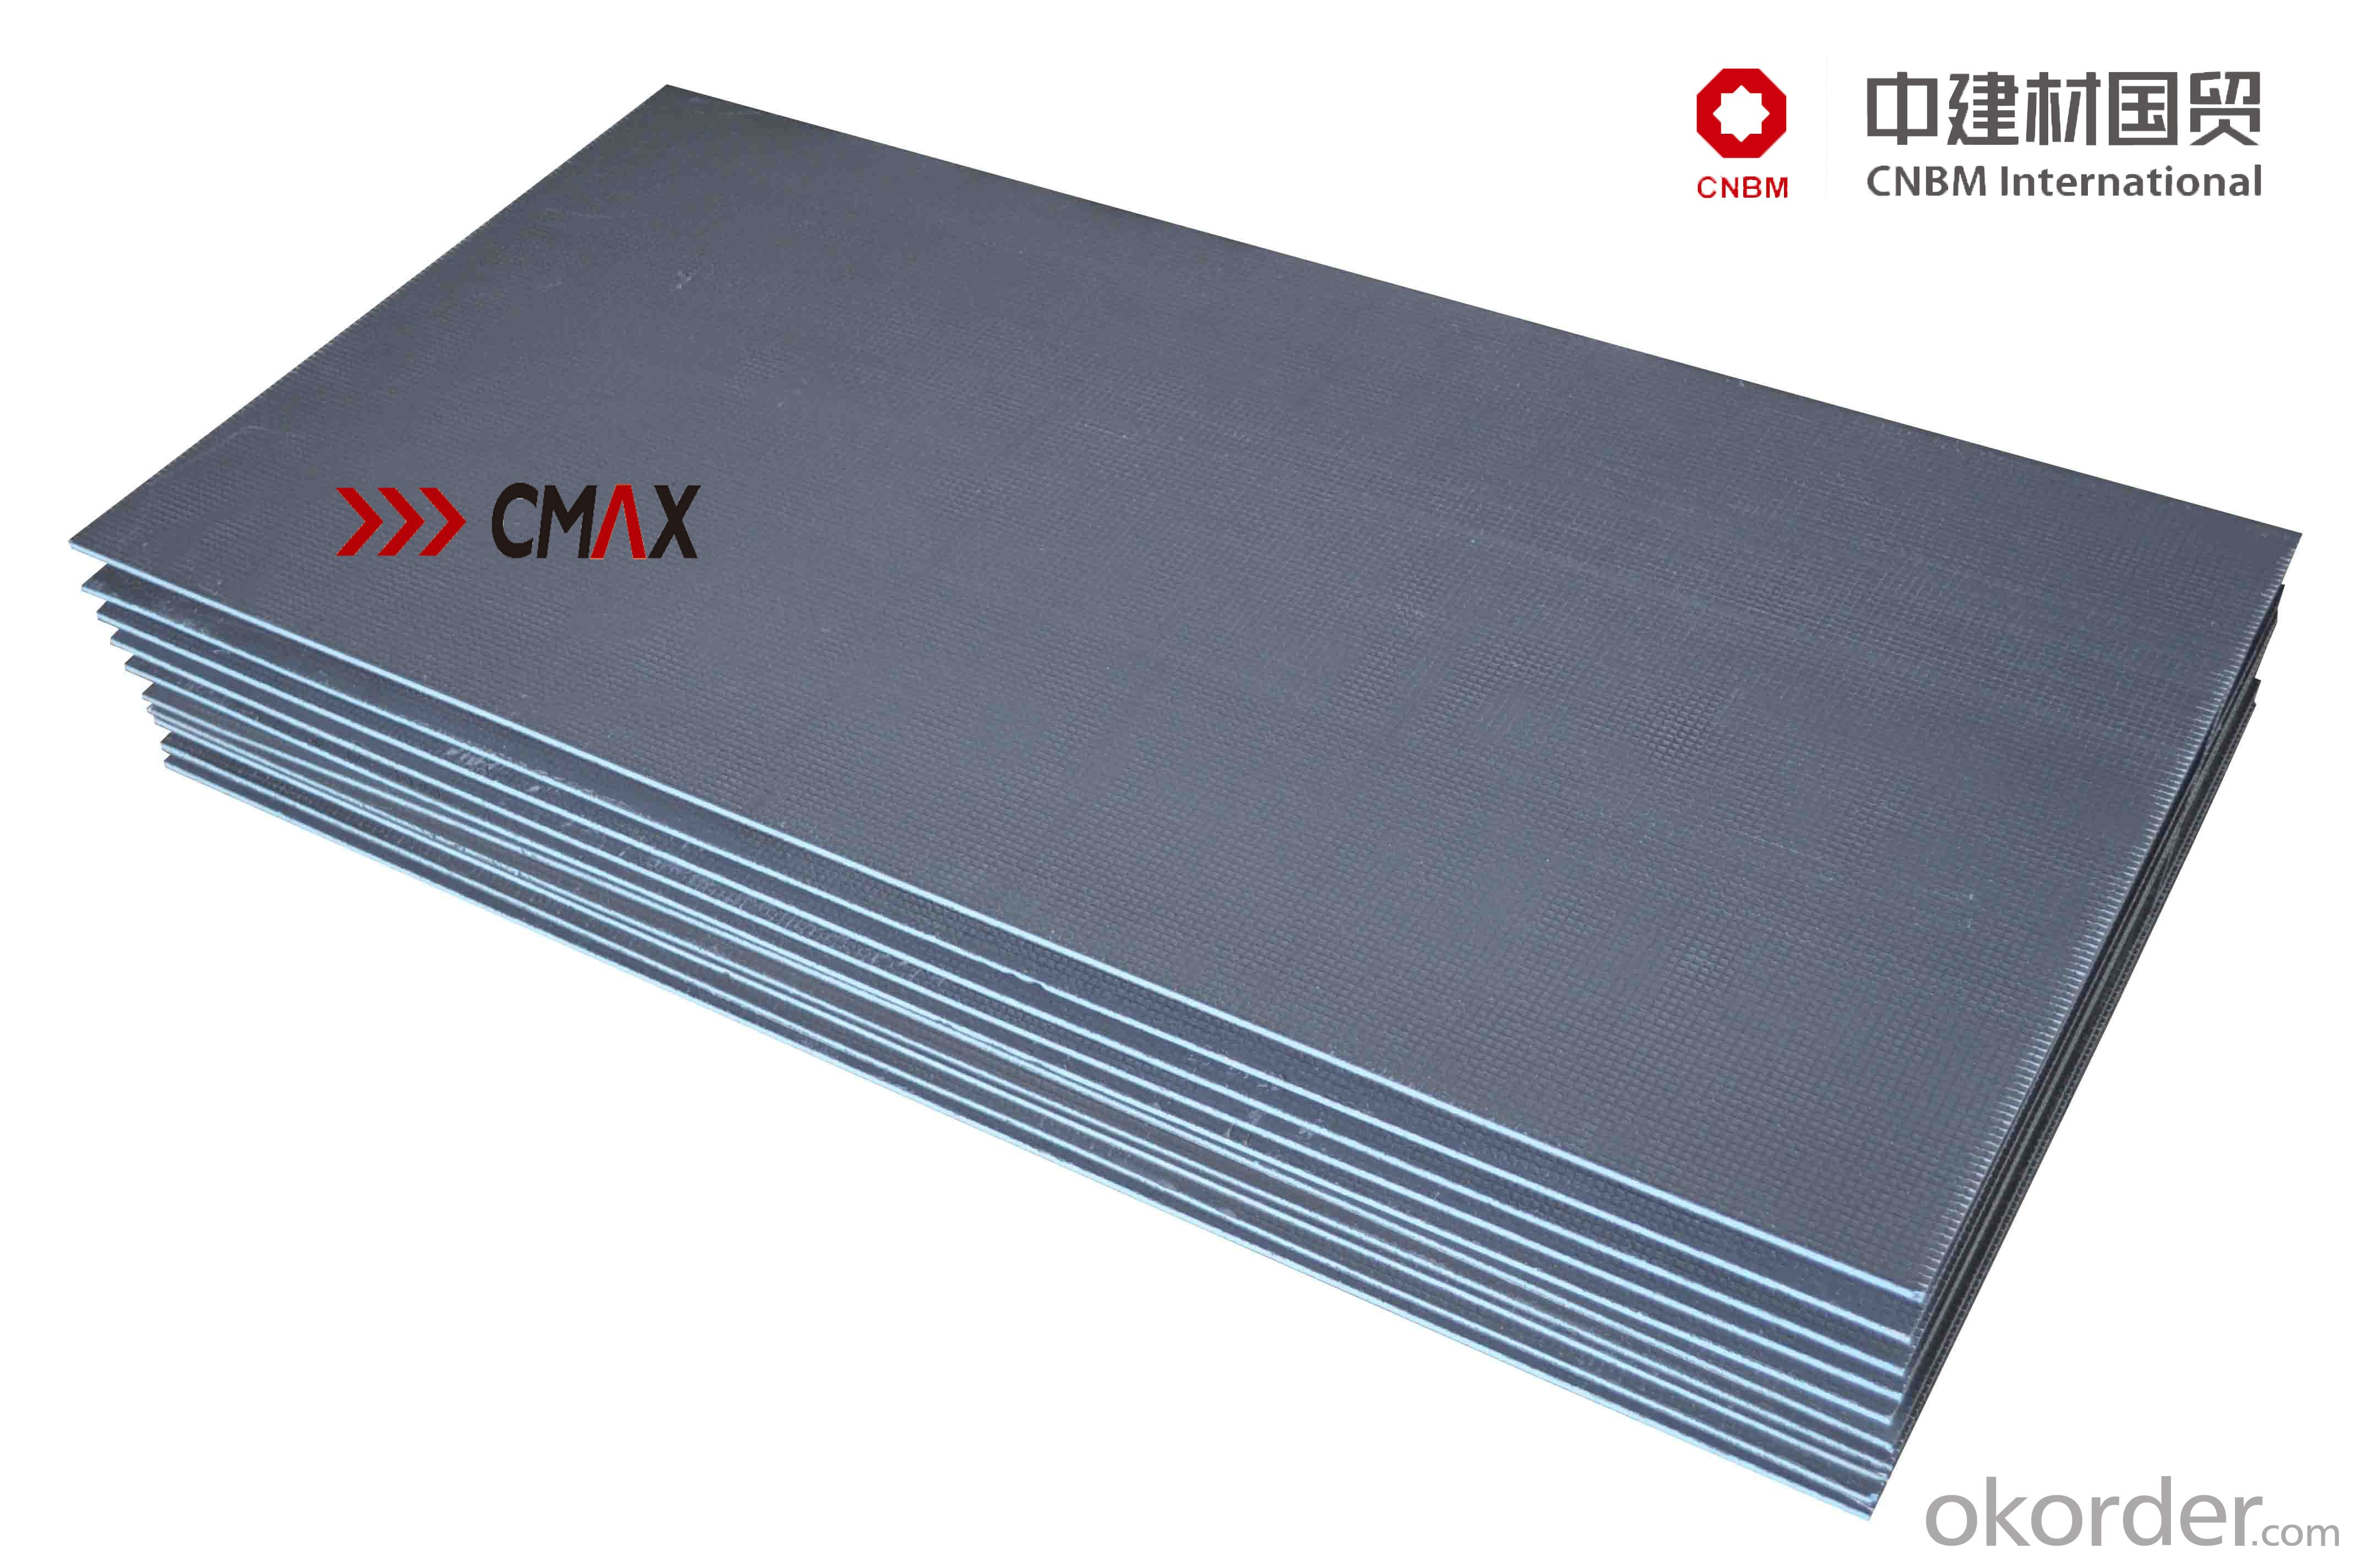 XPS Insulation Board Underfloor Heating for Shower Room CNBM Group